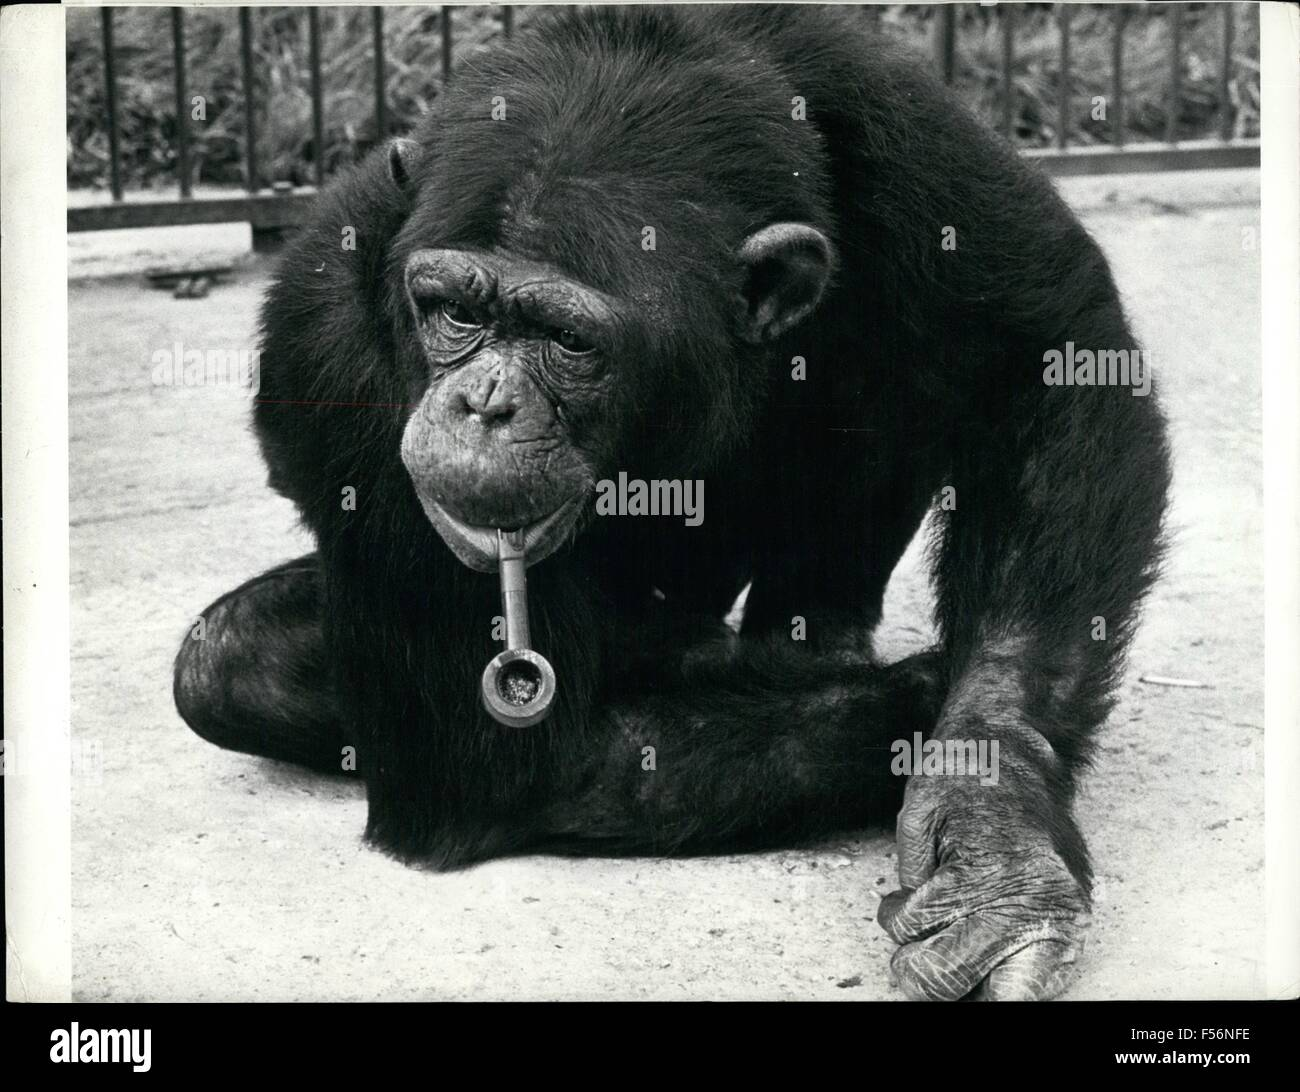 1972 - chimpanzee Chimp's Pipe of Peace Billy the kid, an eight-year-old chimpanzee of Cromer Zoo in Norfolk, England, Stock Photo